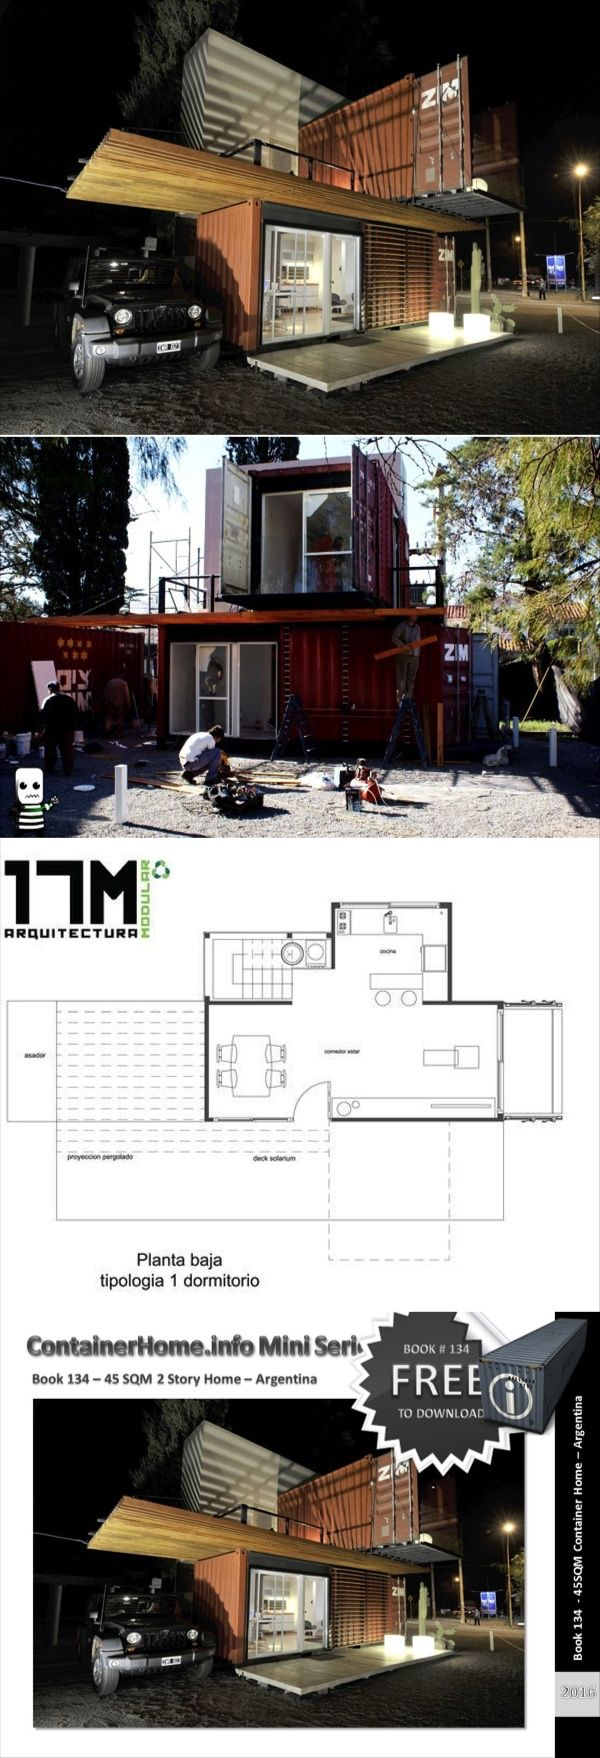 Shipping Container Homes Book Series – Book 134 - Shipping Container Home Plans - How to Plan, Design and Build your own House out of Cargo Containers